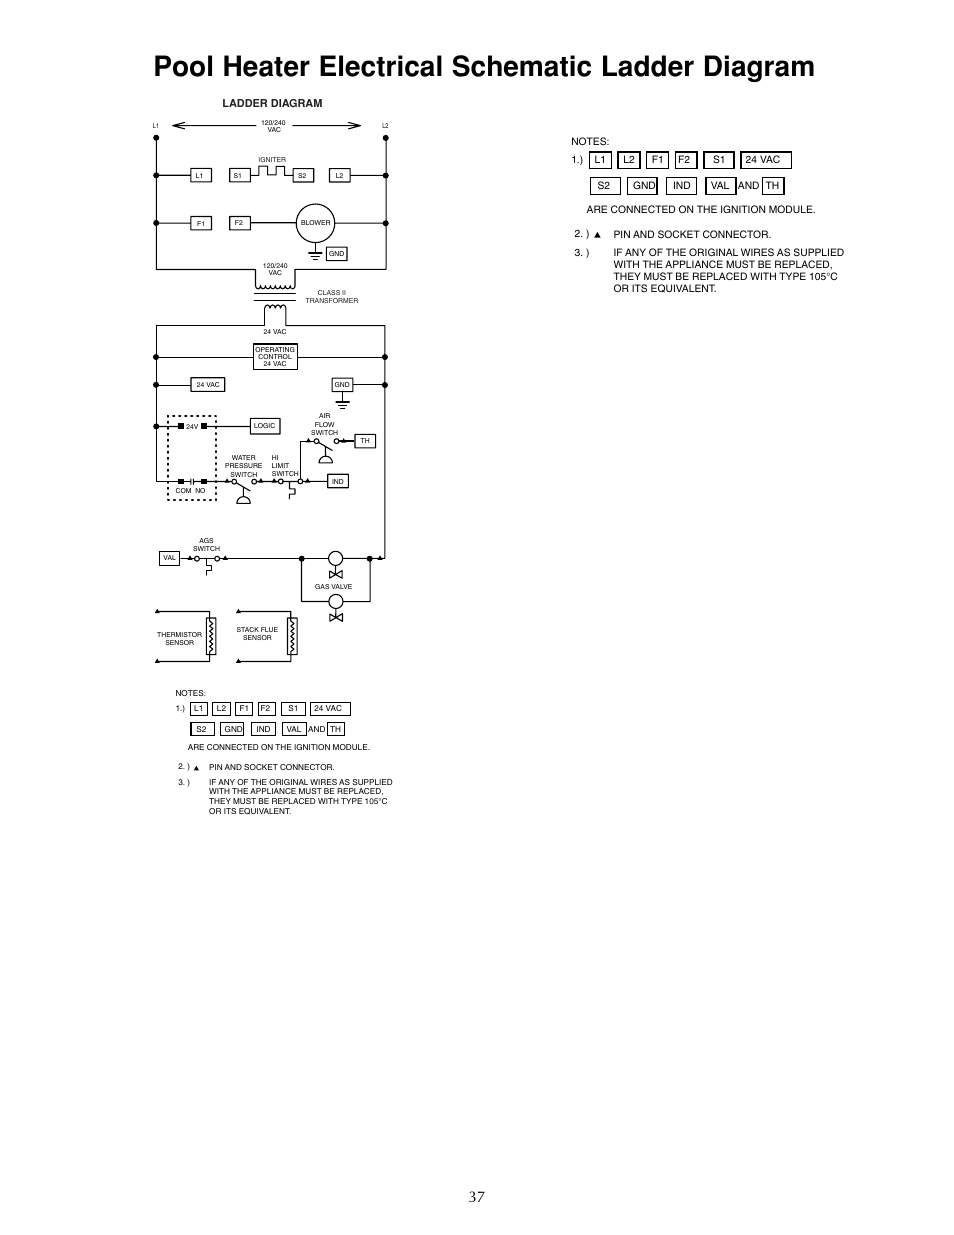 medium resolution of pool heater electrical schematic ladder diagram sta rite sr333lp user manual page 37 38